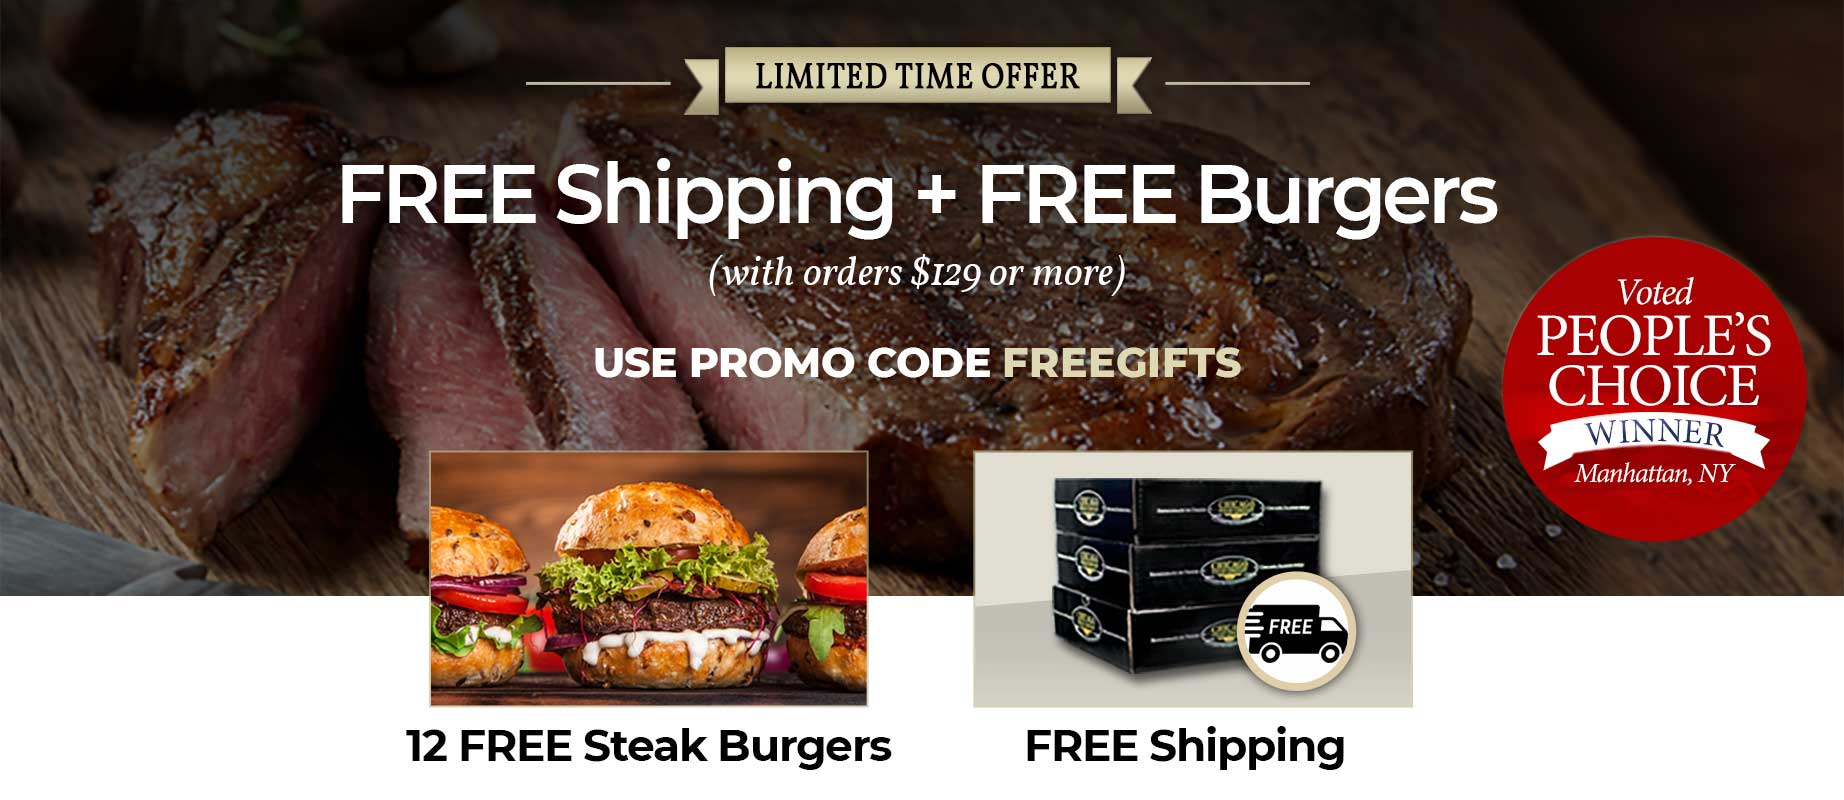 Free Shipping and Free Burgers with promo code FREEGIFTS, orders $119 and up